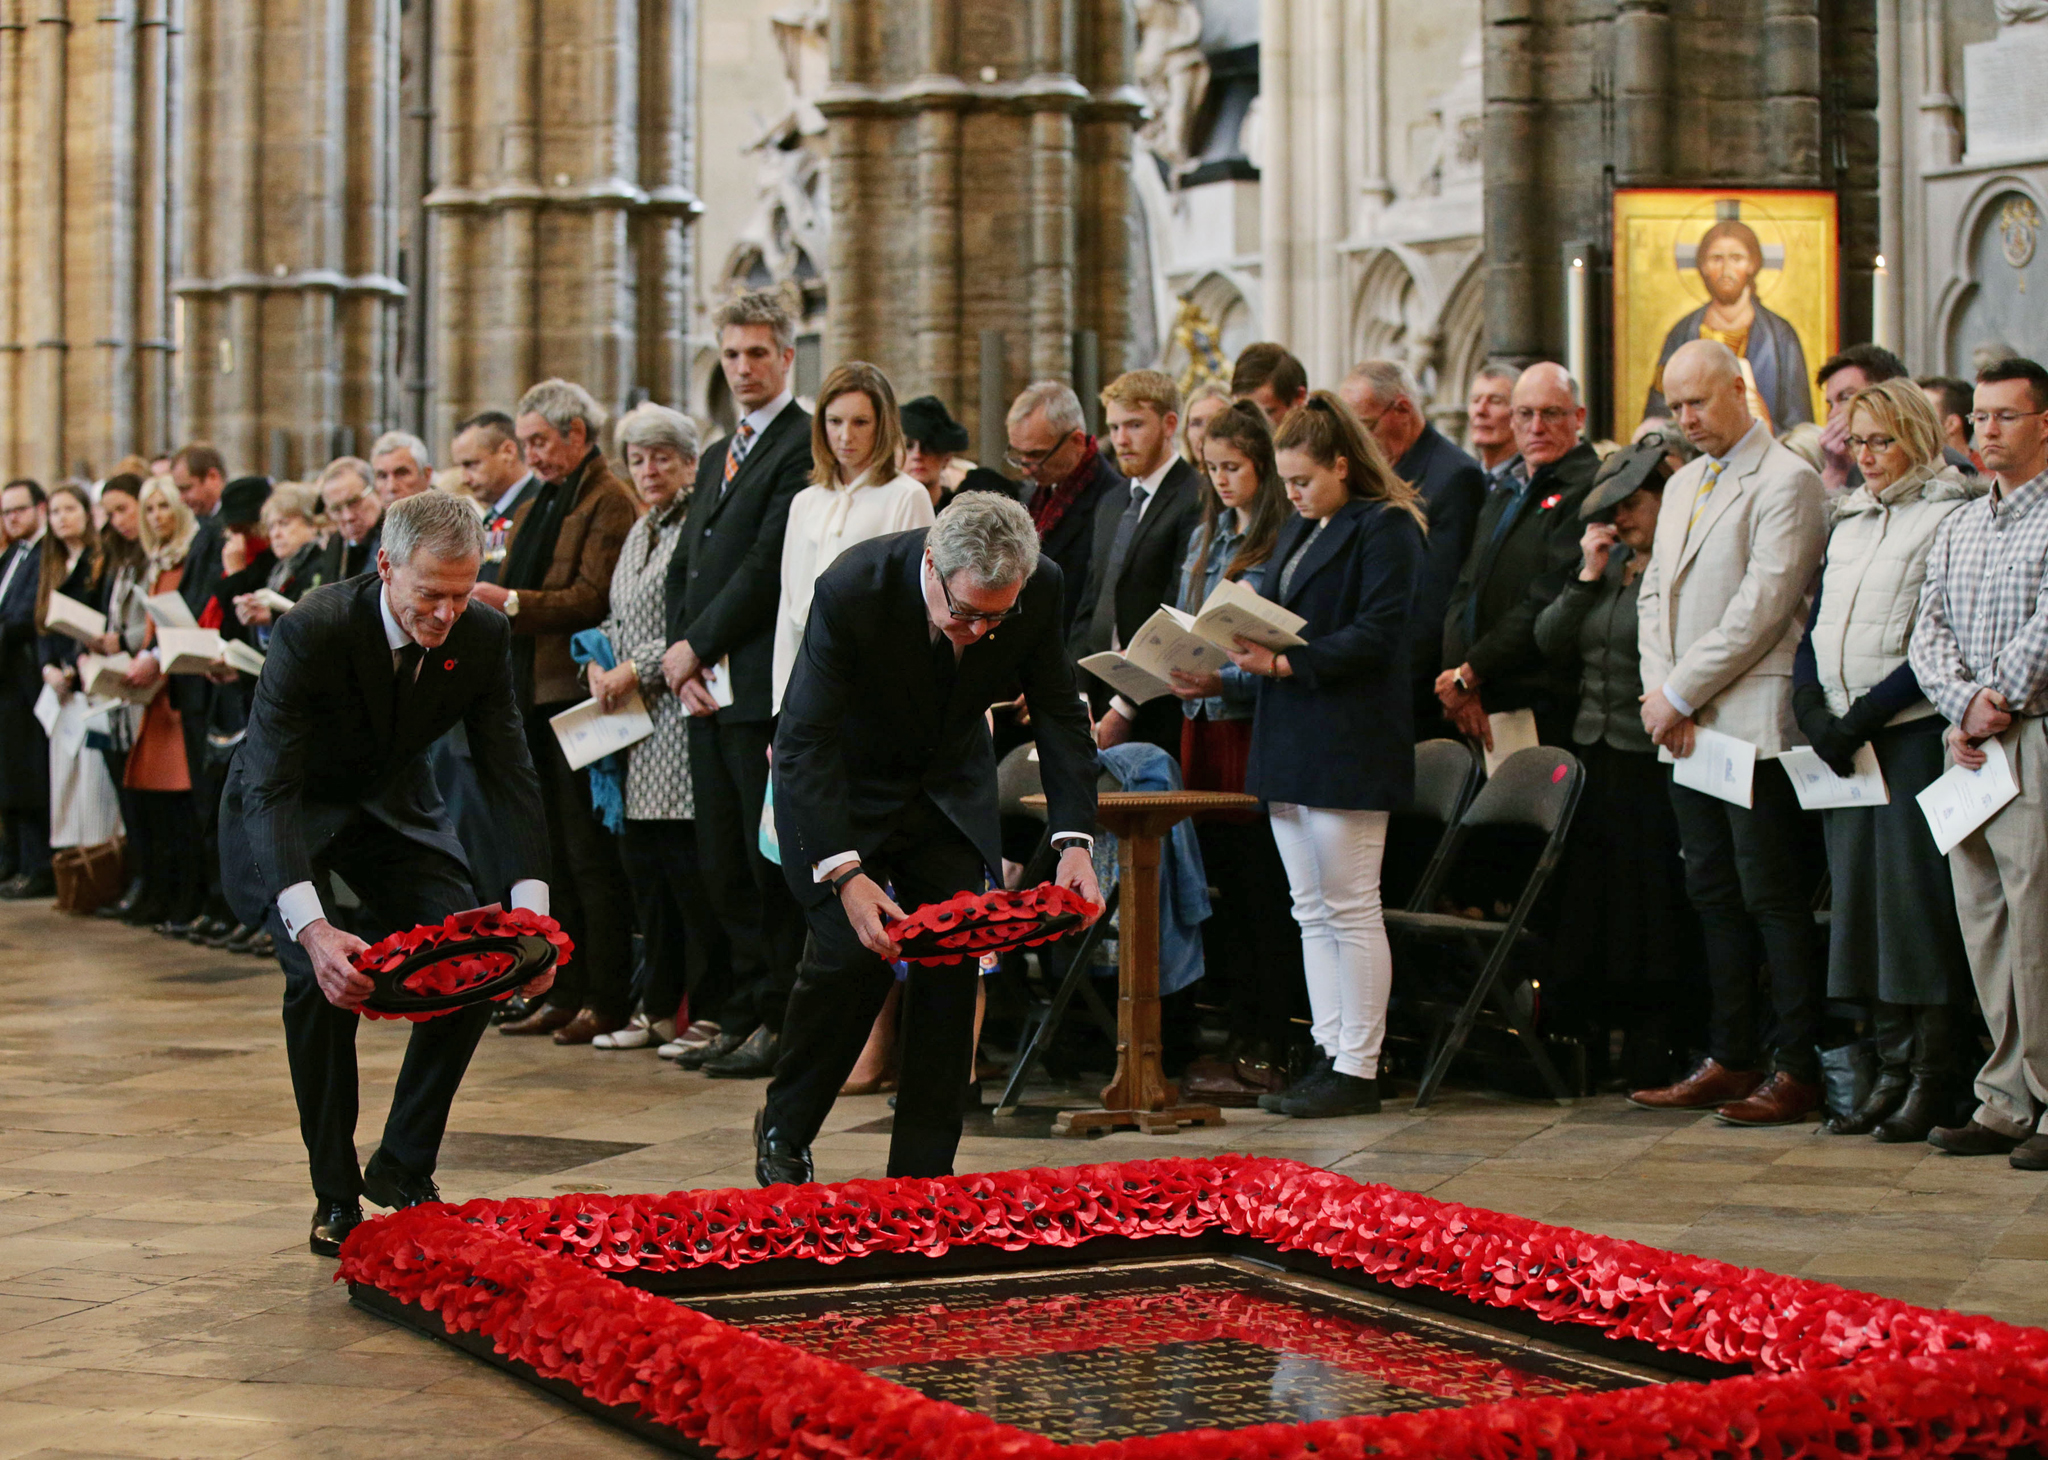 His Excellency the Rt Hon Sir Lockwood Smith (left), High Commissioner for New Zealand, and His Excellency the Hon Alexander Downer AC,High Commissioner for Australia, laying wreaths at the Tomb of the Unknown Warrior during the annual Service of Commemoration and Thanksgiving to Mark ANZAC Day at Westminster Abbey, London. PRESS ASSOCIATION Photo. Picture date: Monday April 25, 2016. Anzac Day has been commemorated in the capital since the first anniversary of the Anzac landings at Gallipoli in 1916, when King George V attended a service at Westminster Abbey.